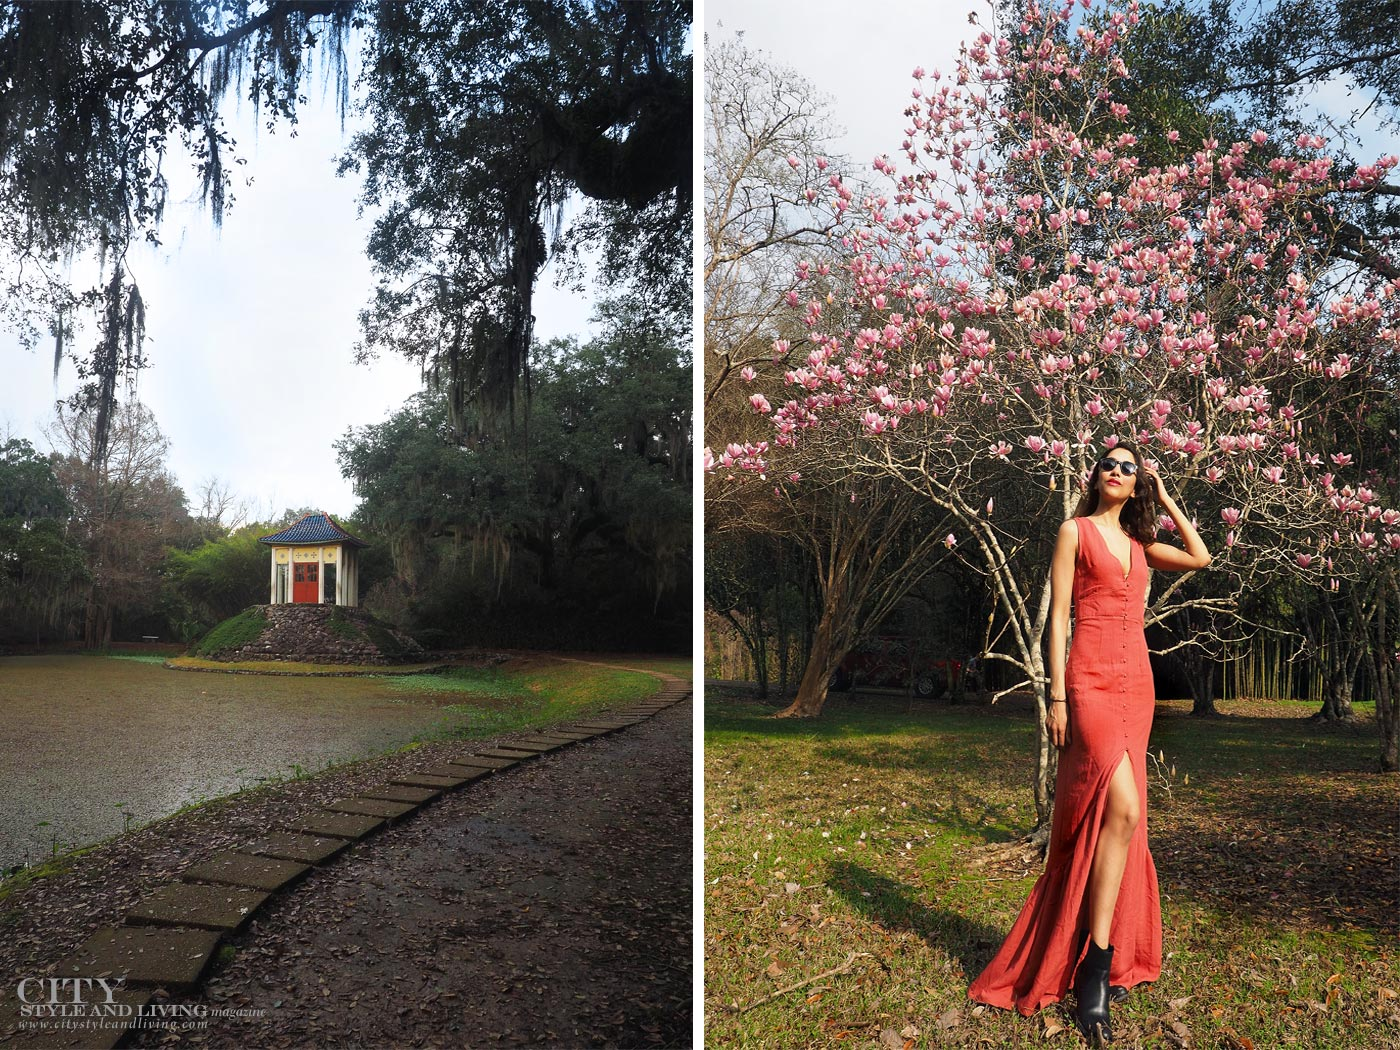 City style and living magazine The Editors Notebook style fashion blogger Shivana Maharaj New Orleans French Quarter Orange Dress Jungle Gardens Avery Island